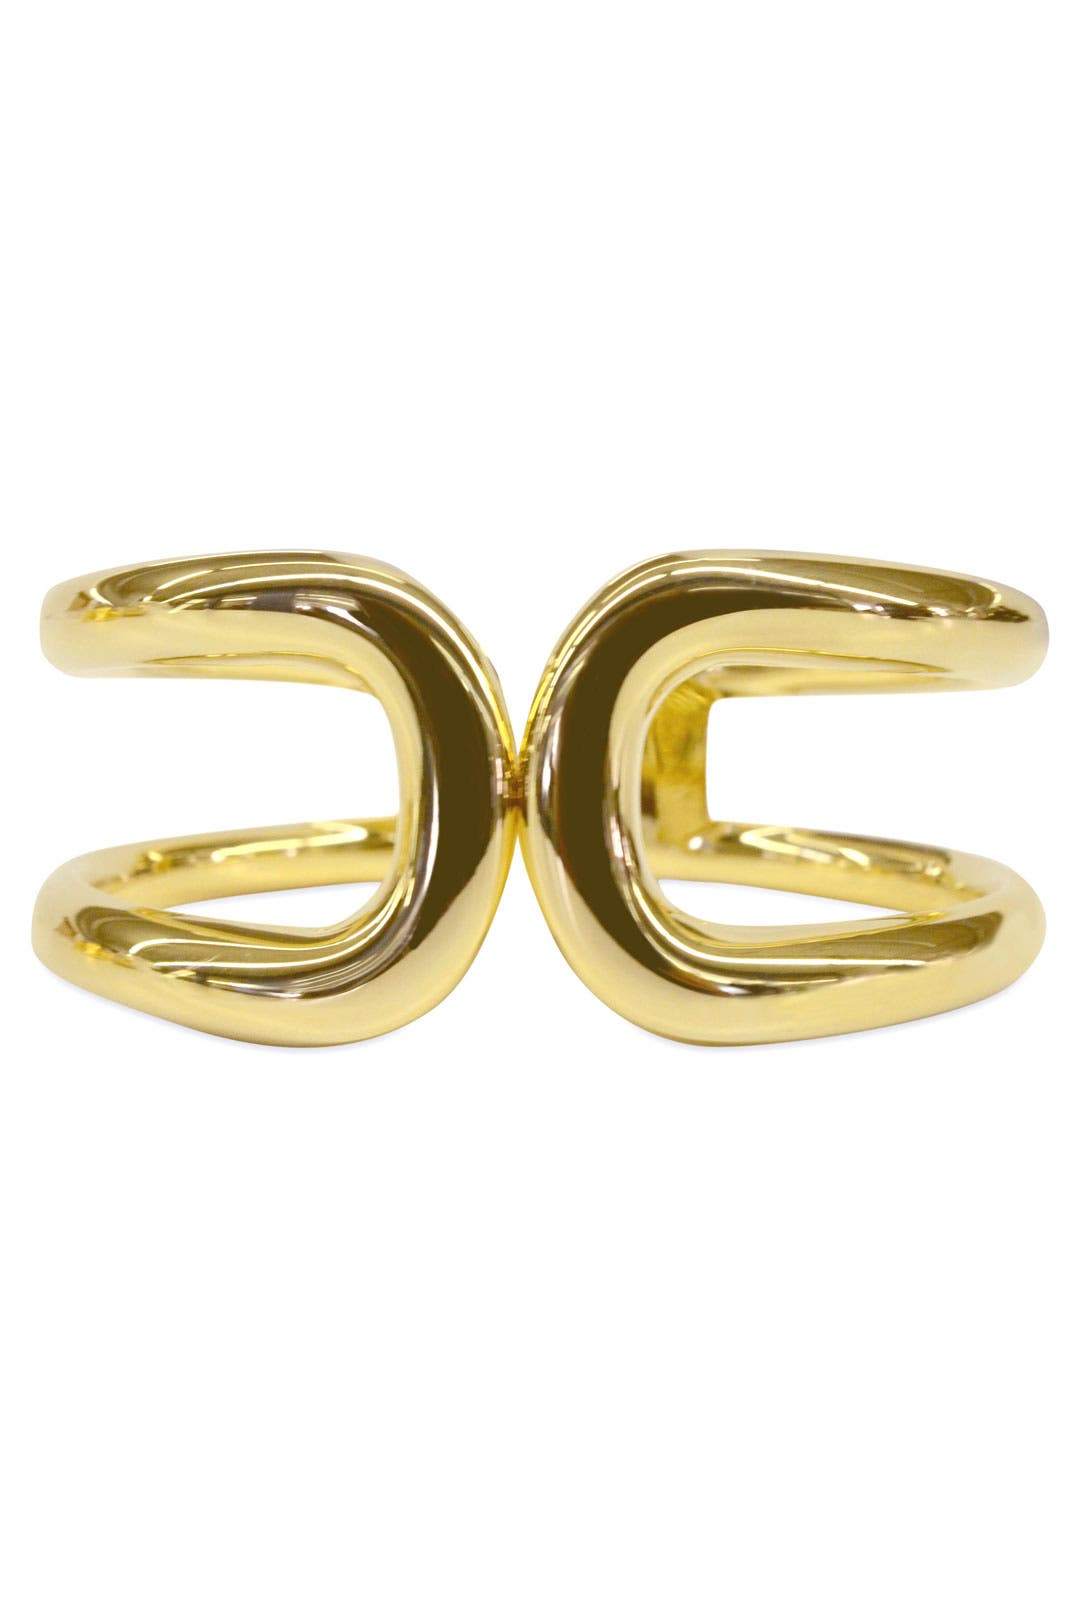 Gold Horseshoe Cuff by Cinder & Charm